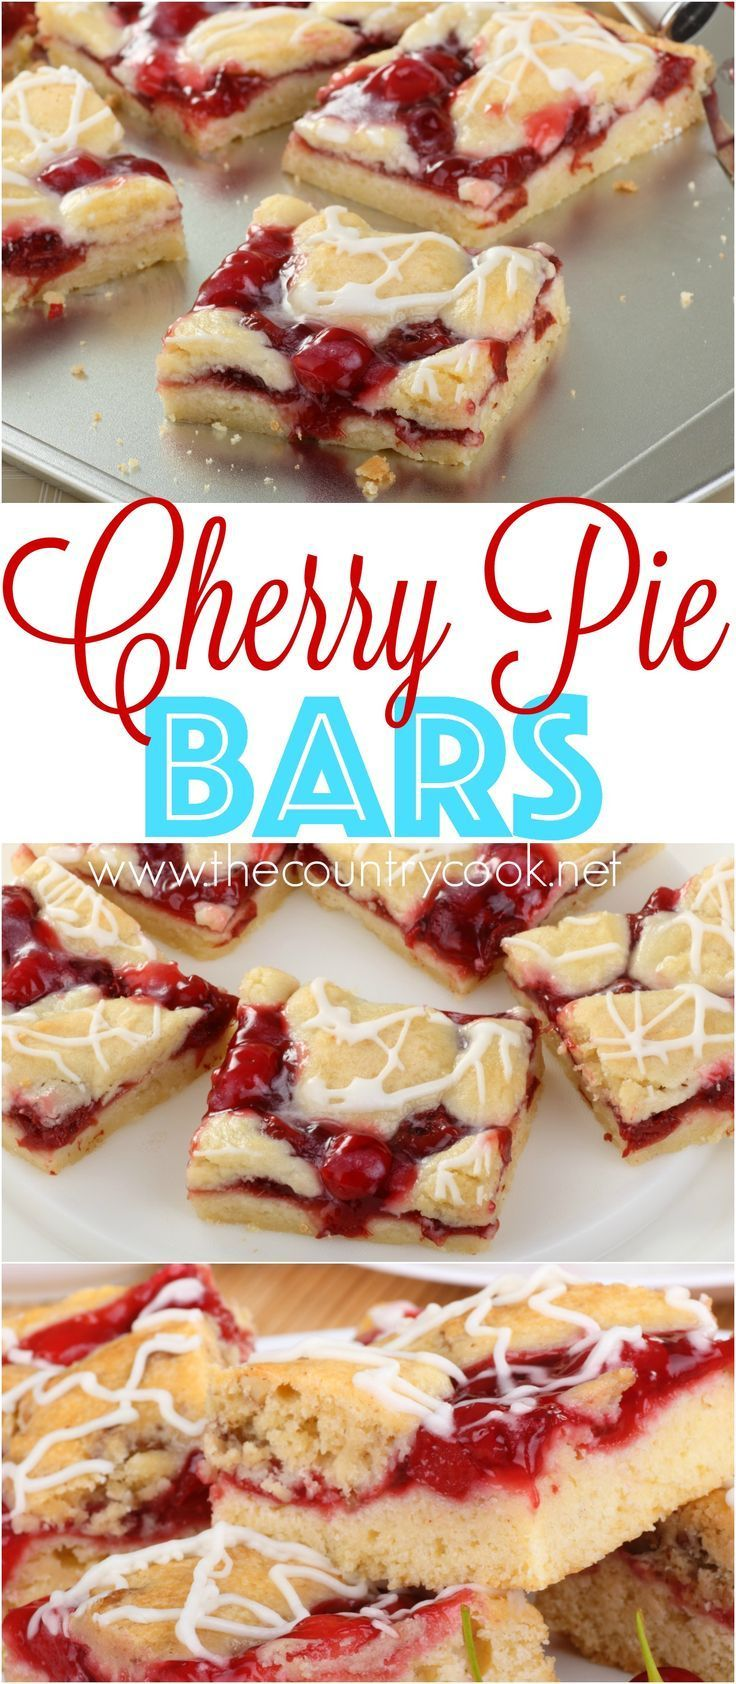 Cherry Pie Bars recipe from The Country Cook. A homemade recipe that is easy to make and serve. Everyone loves them! Switch out the pie filling to easily change up the recipe! #desserts #recipes #easy #cherry